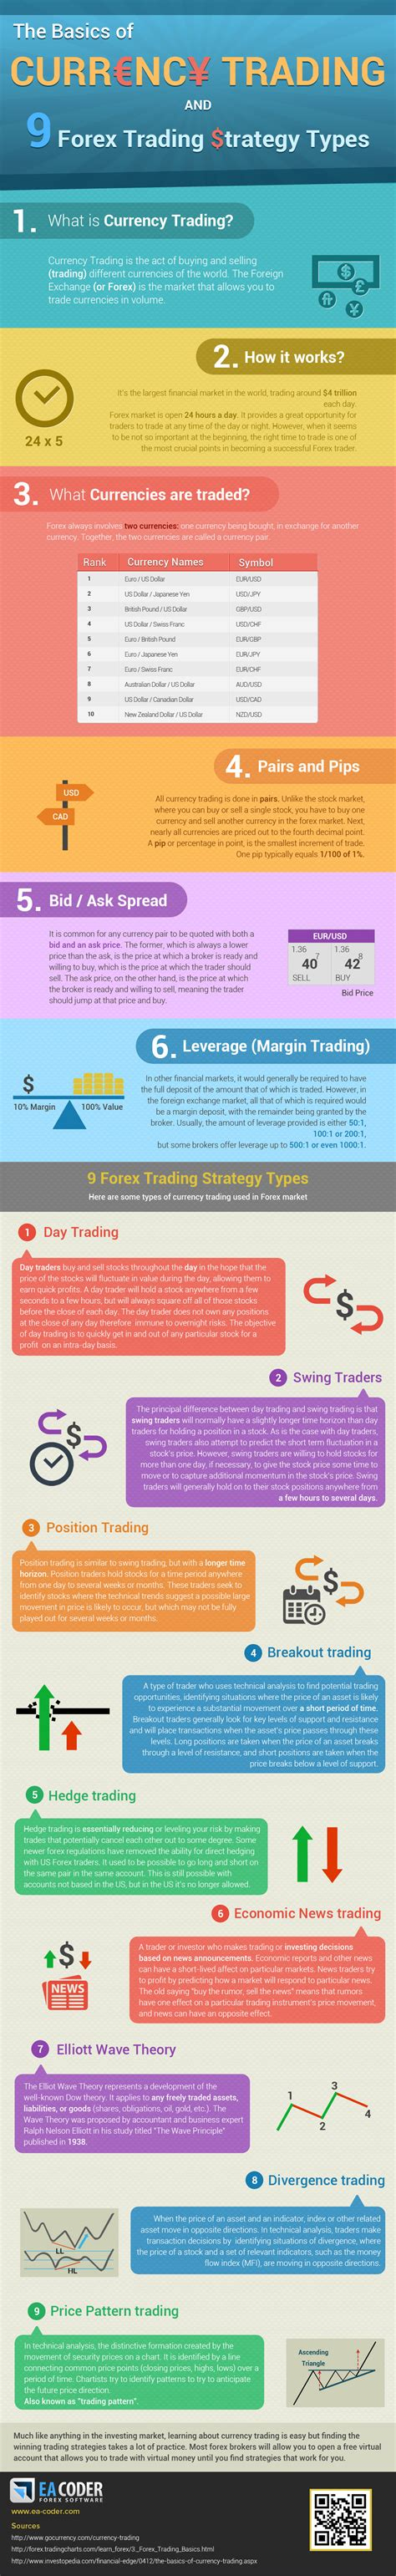 currency trading strategies infographic the basics of currency trading